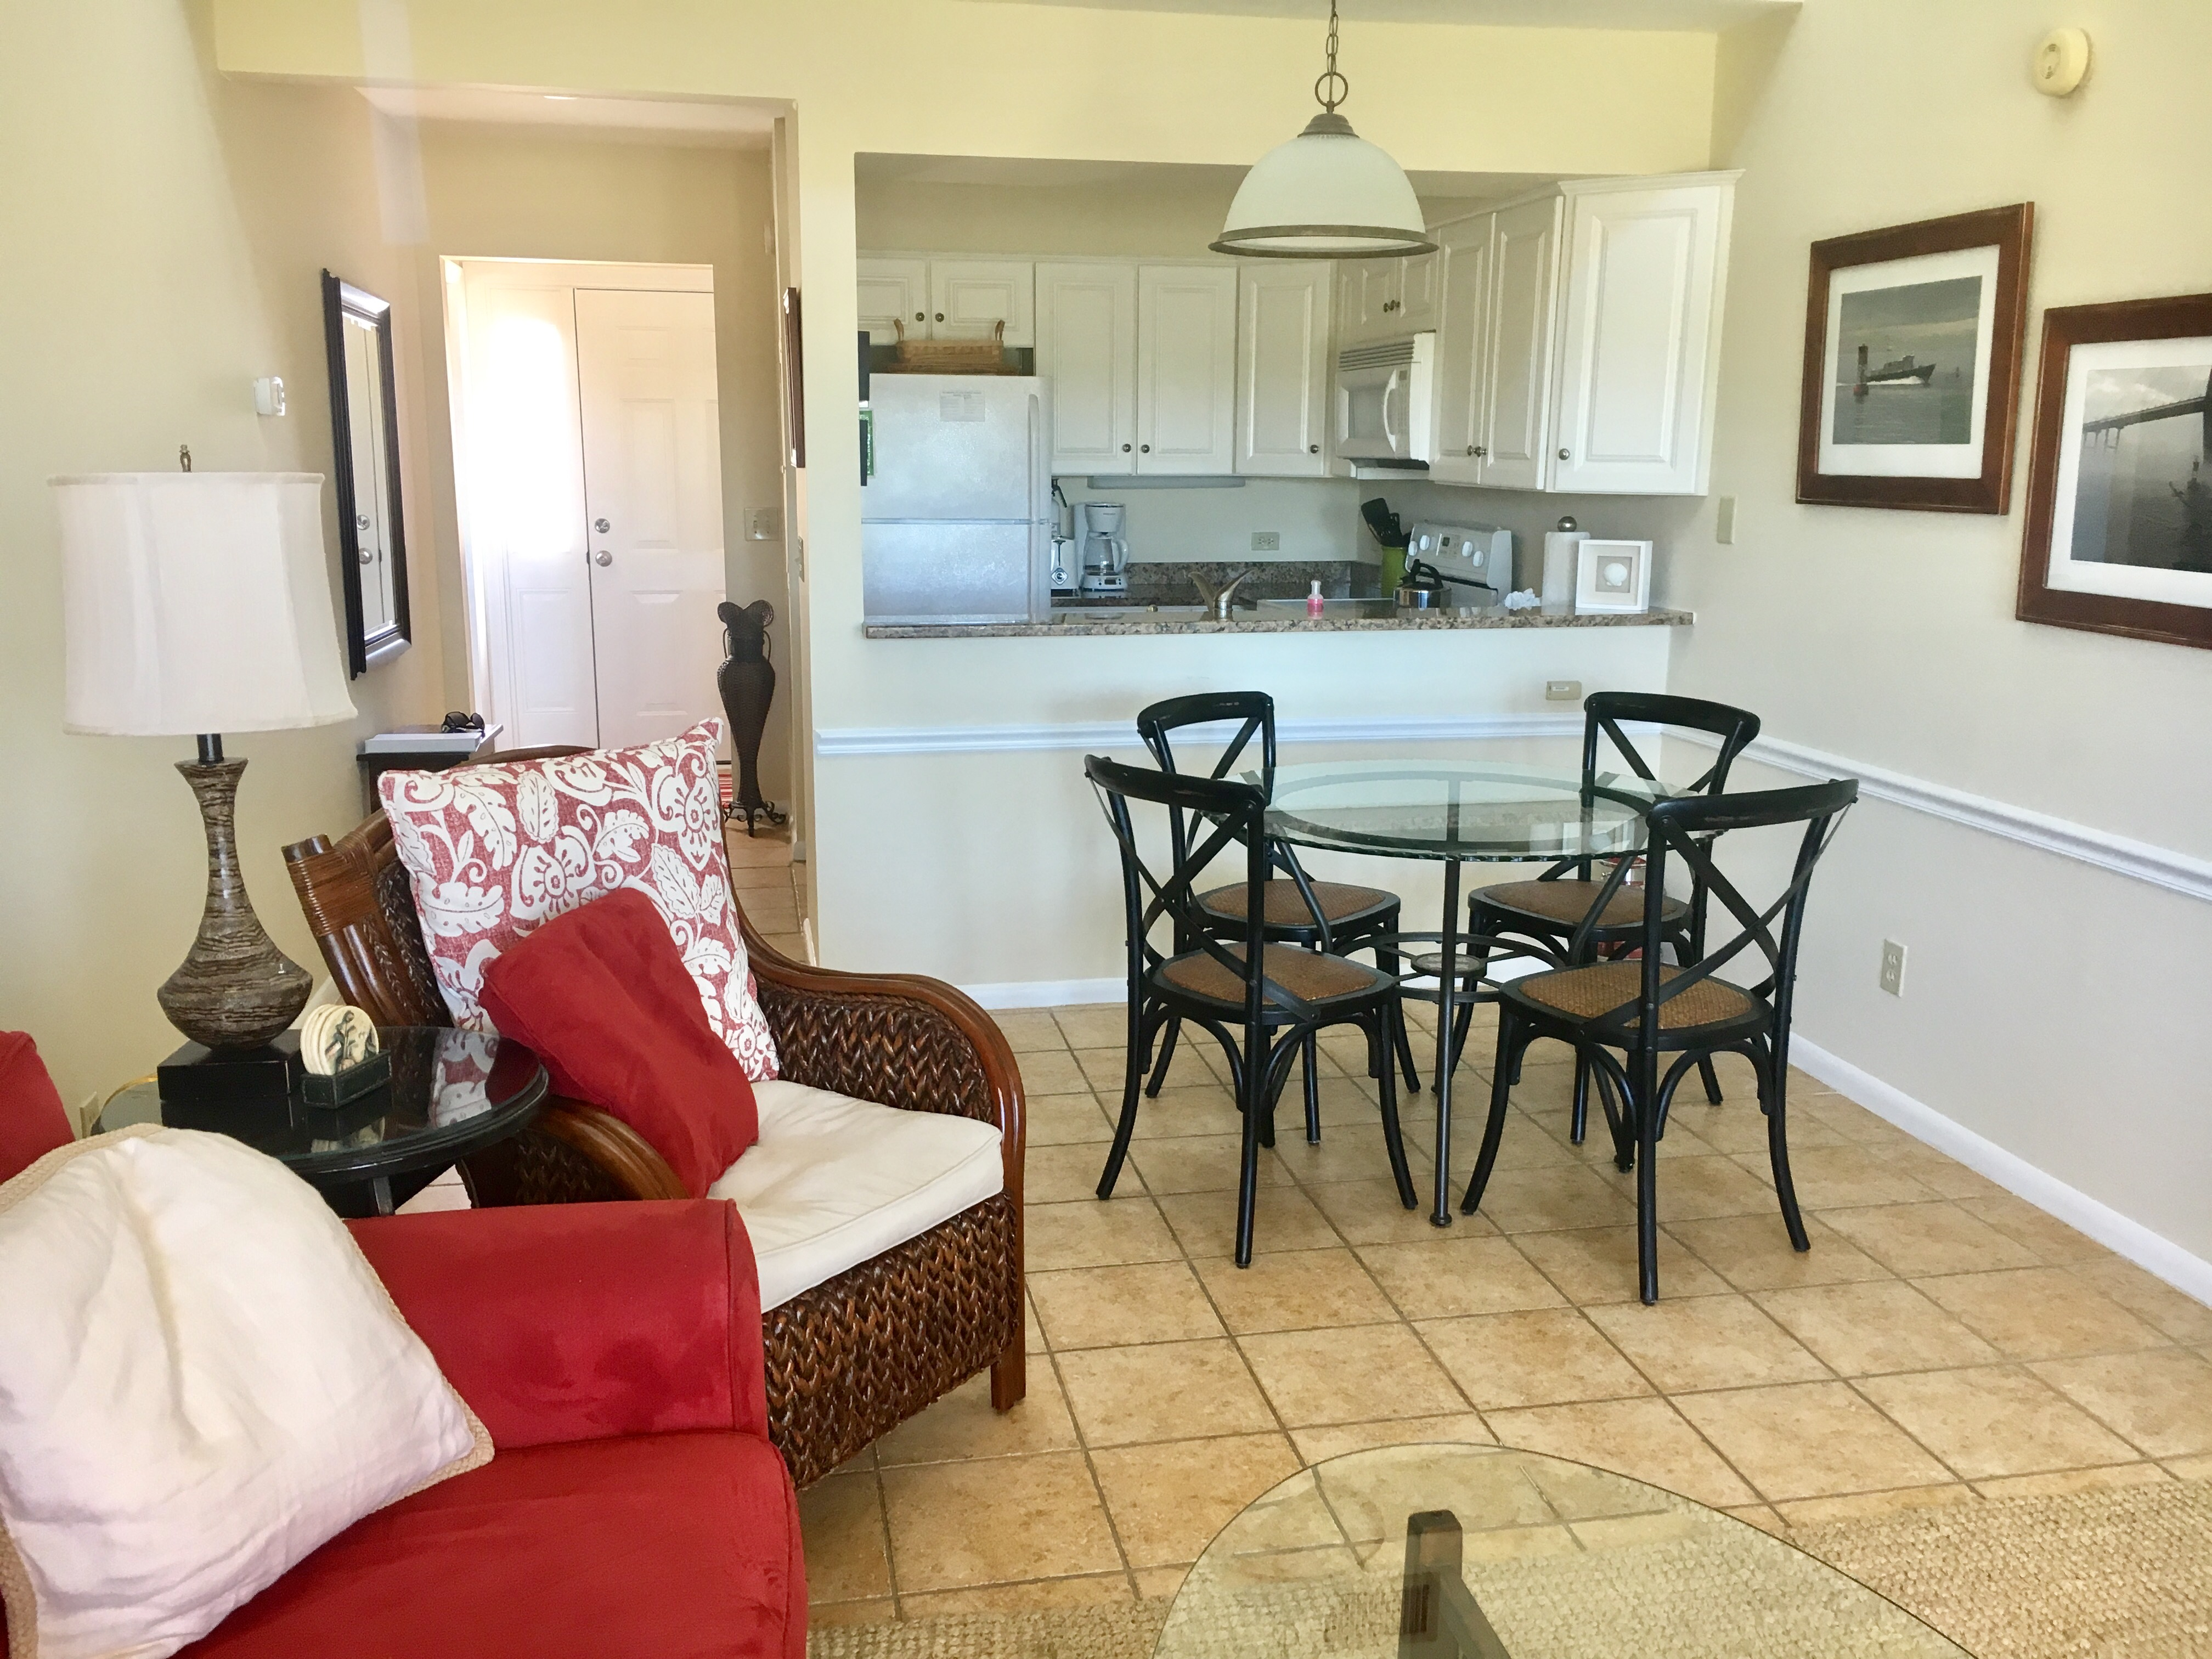 The open floor plan allows everyone to be involved in the activities whether making dinner or enjoying a favorite movie.